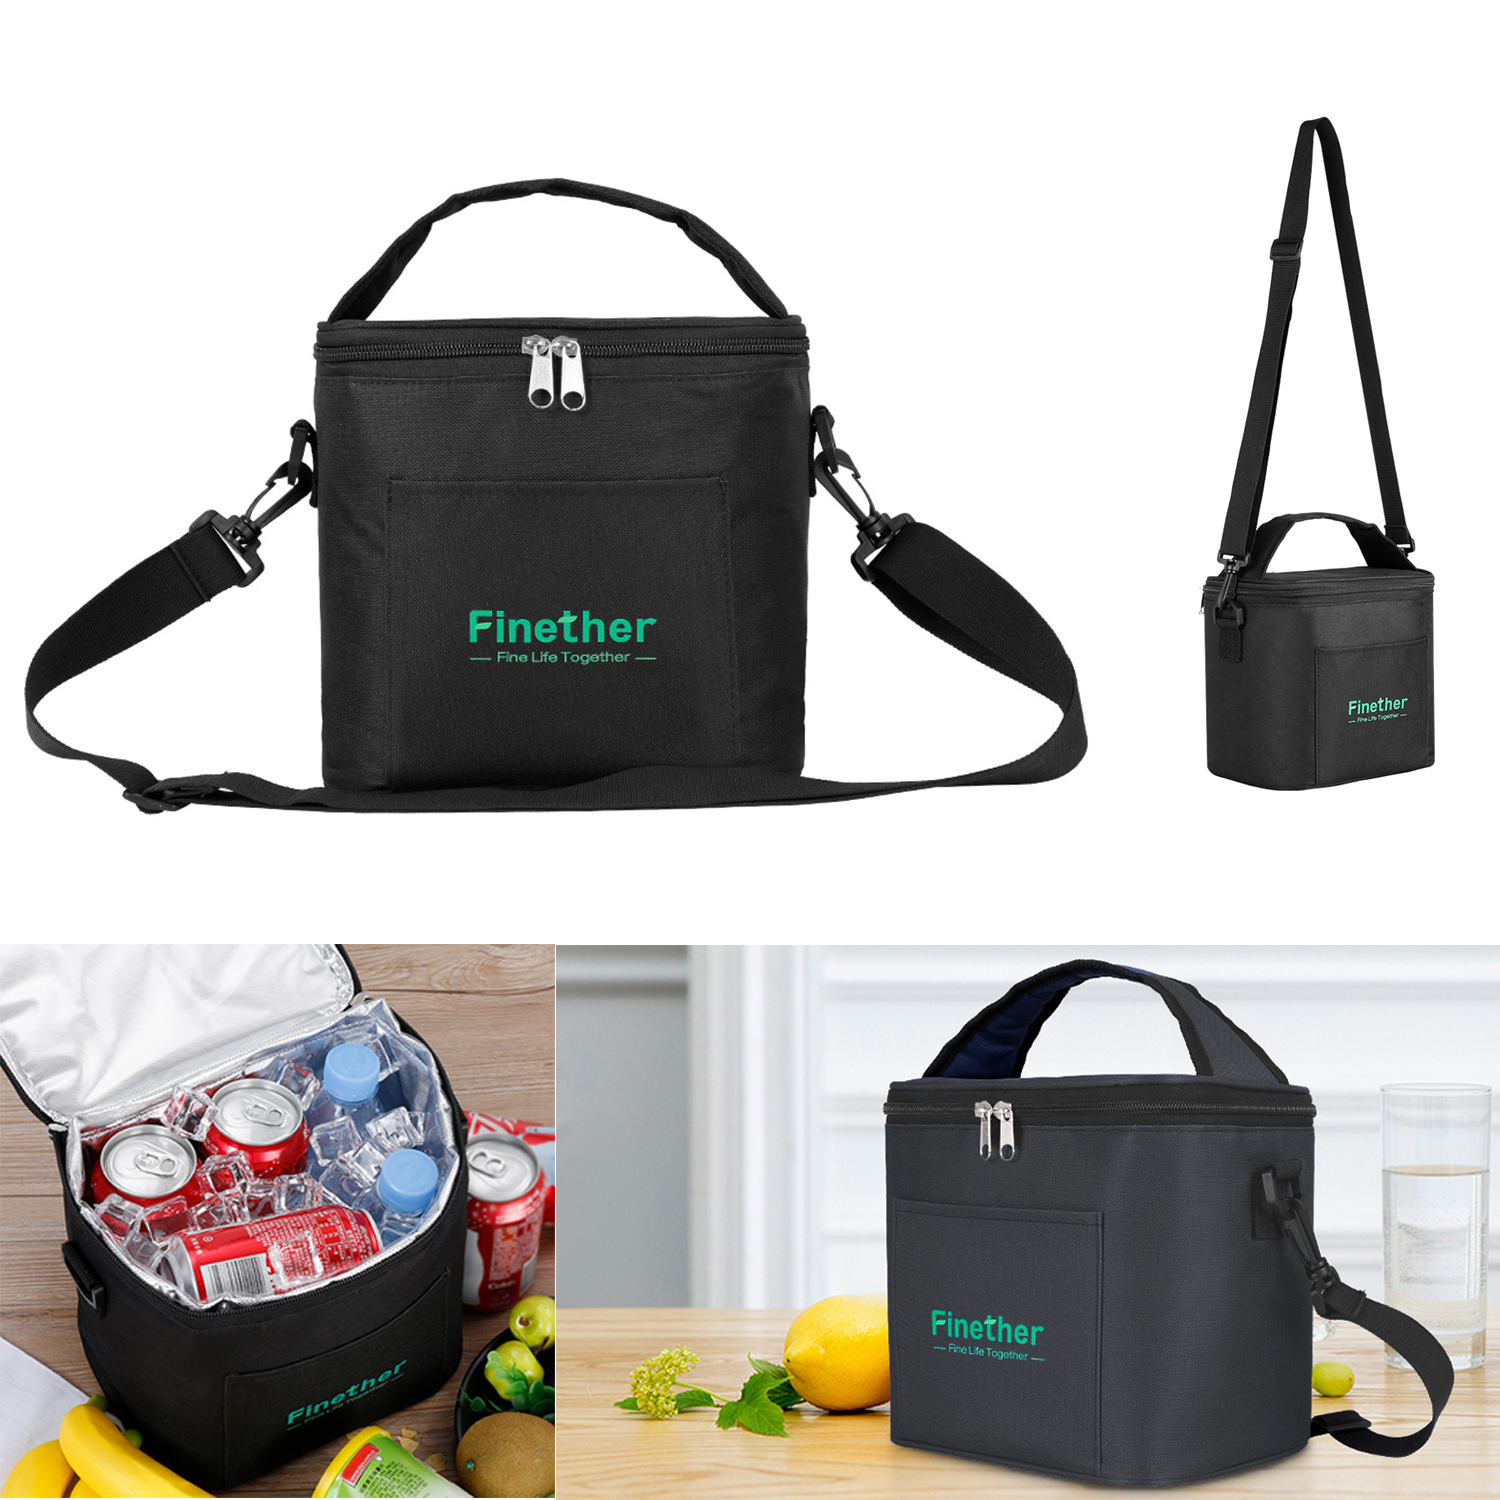 Finether Insulated Lunch Bag Detachable Shoulder Strap - 2 Way Closure Zippers Safe Thermal Tote Lunch Cooler Carry Bags for Adults Men Women